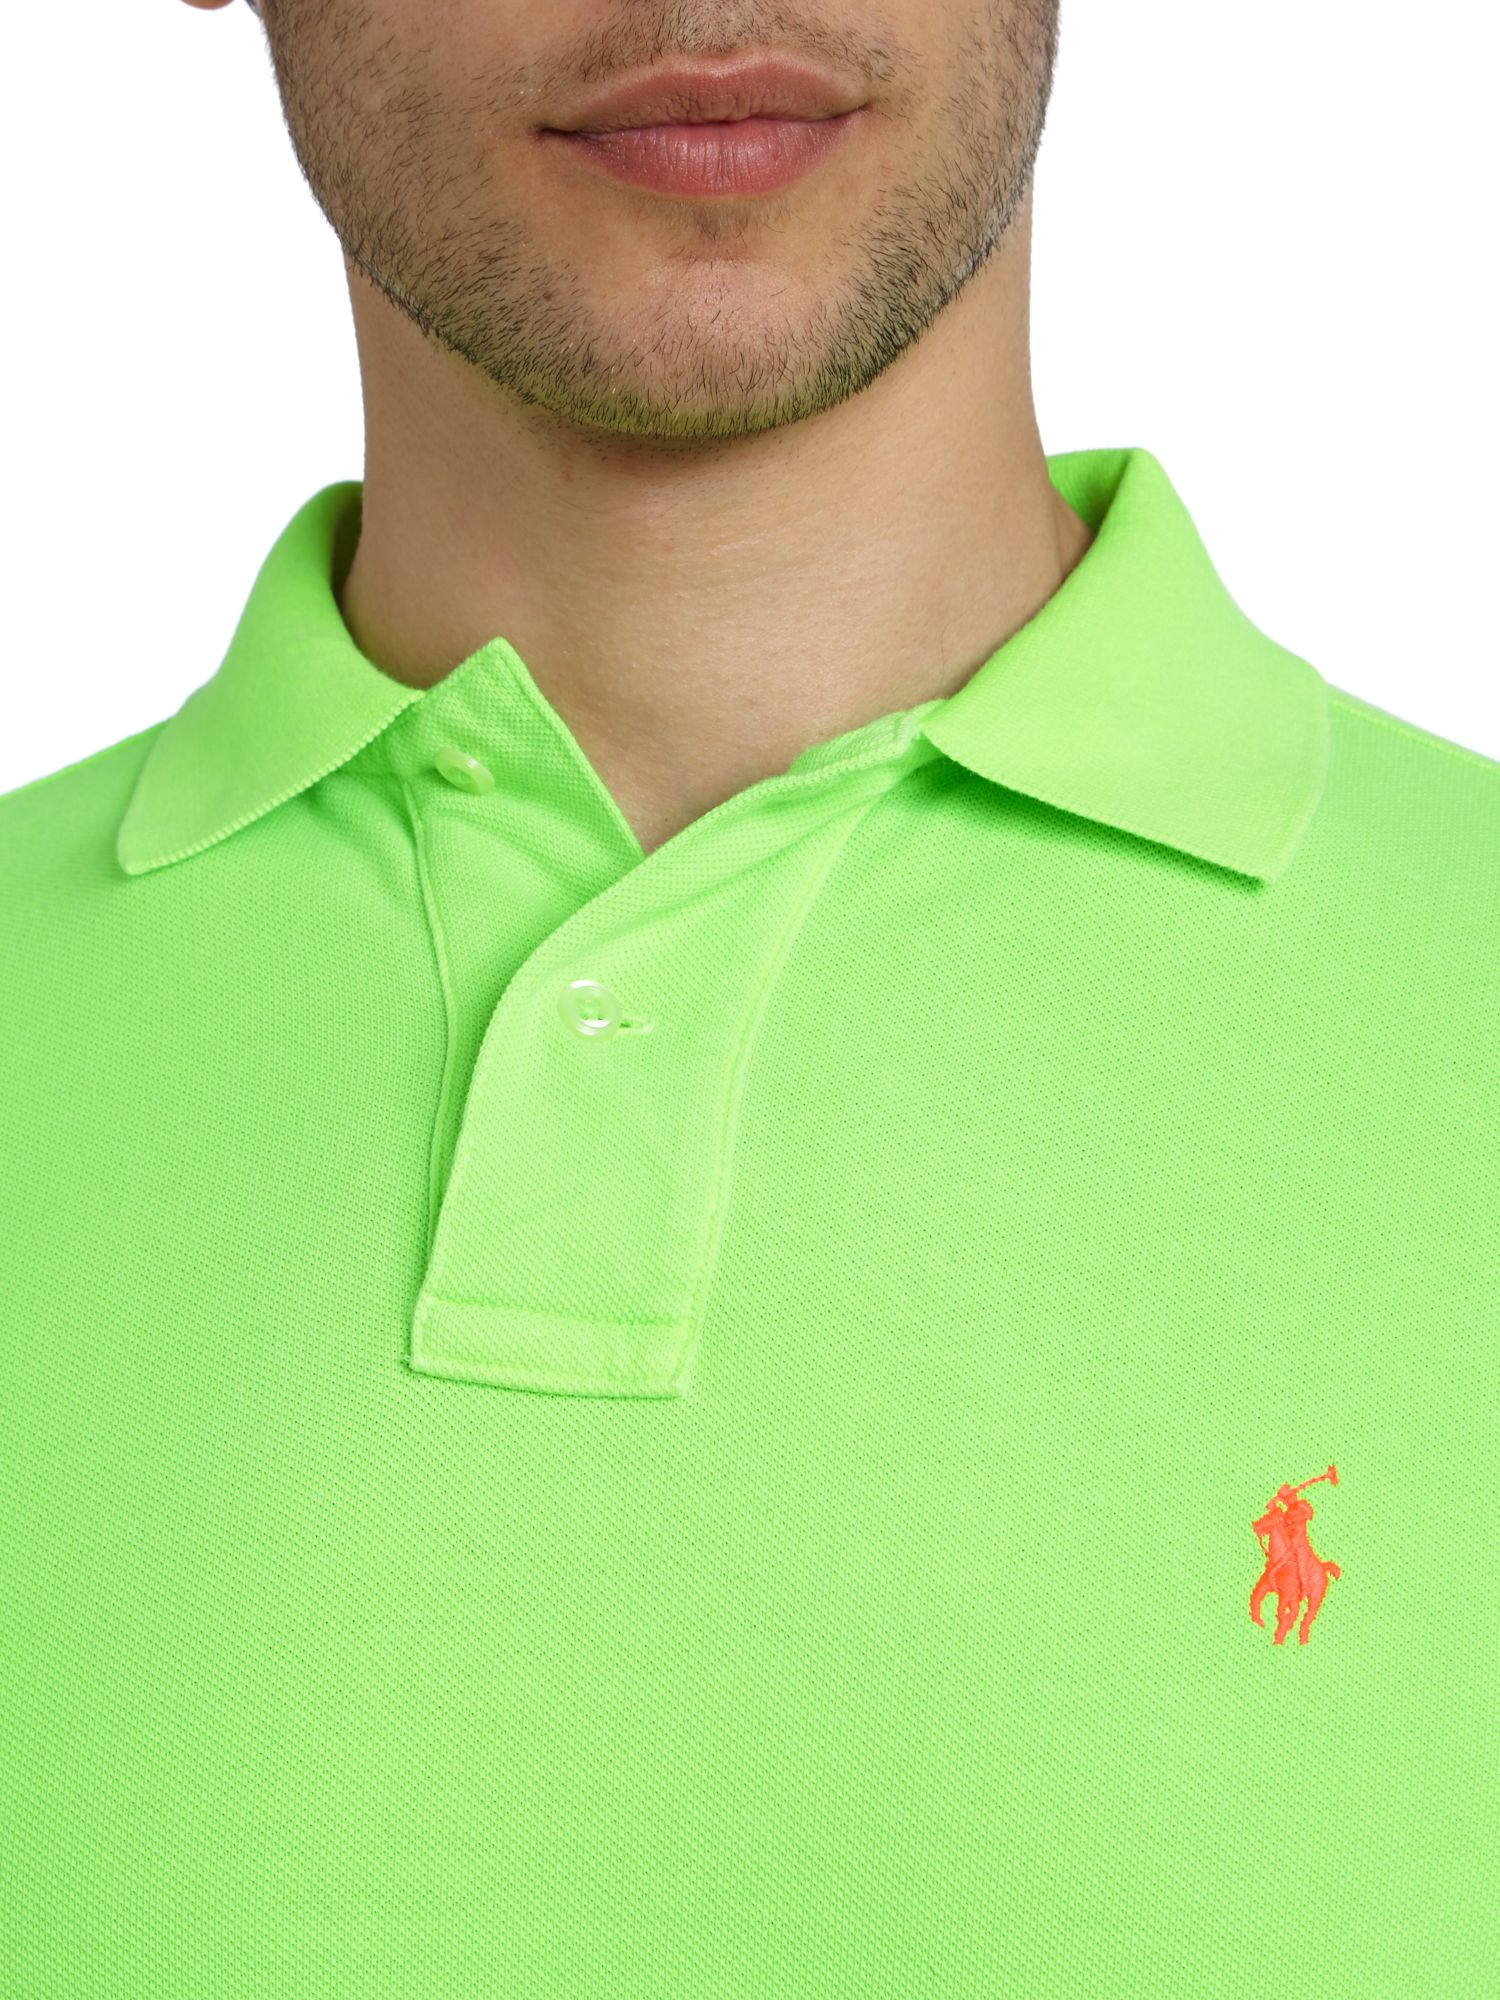 Price 72059 Ralph Lauren Neon Green Polo Bb4a9 Low wTOPkZliuX